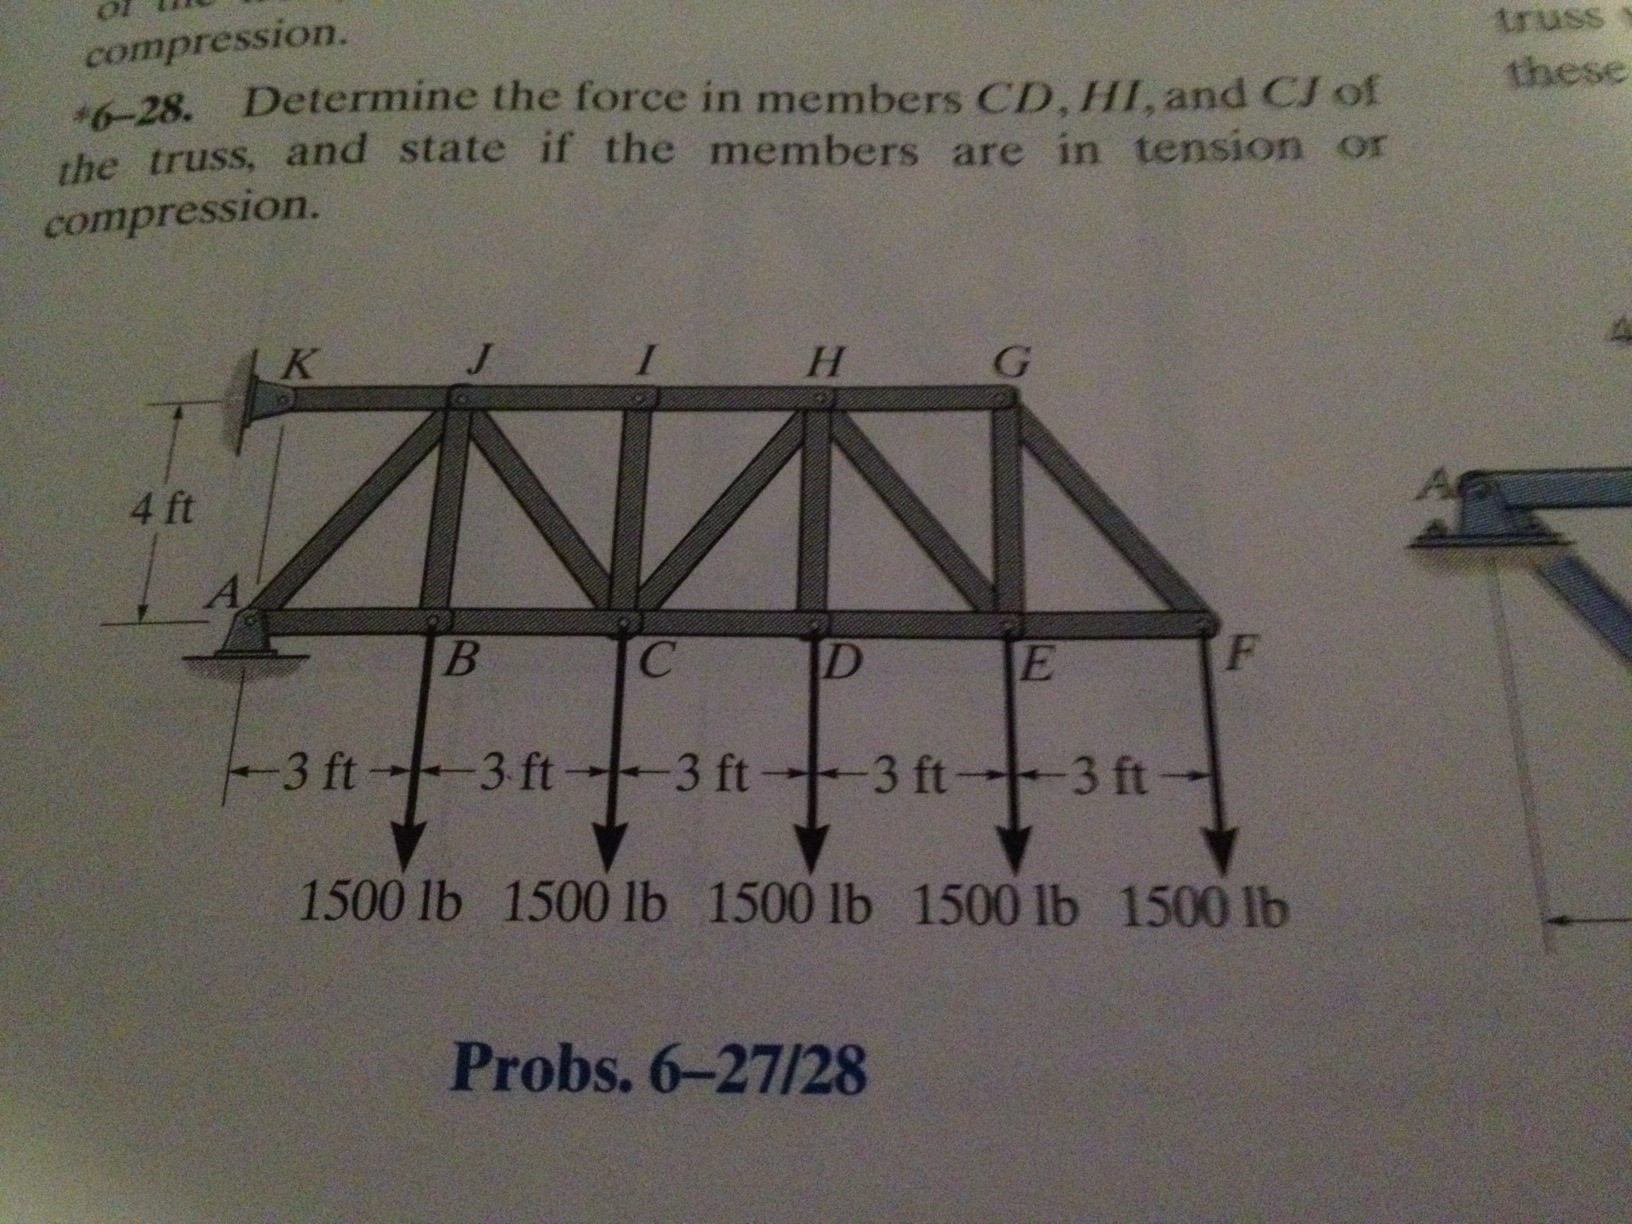 truss tension and compression diagram wiring for fog lights solved determine the force in members hg he de